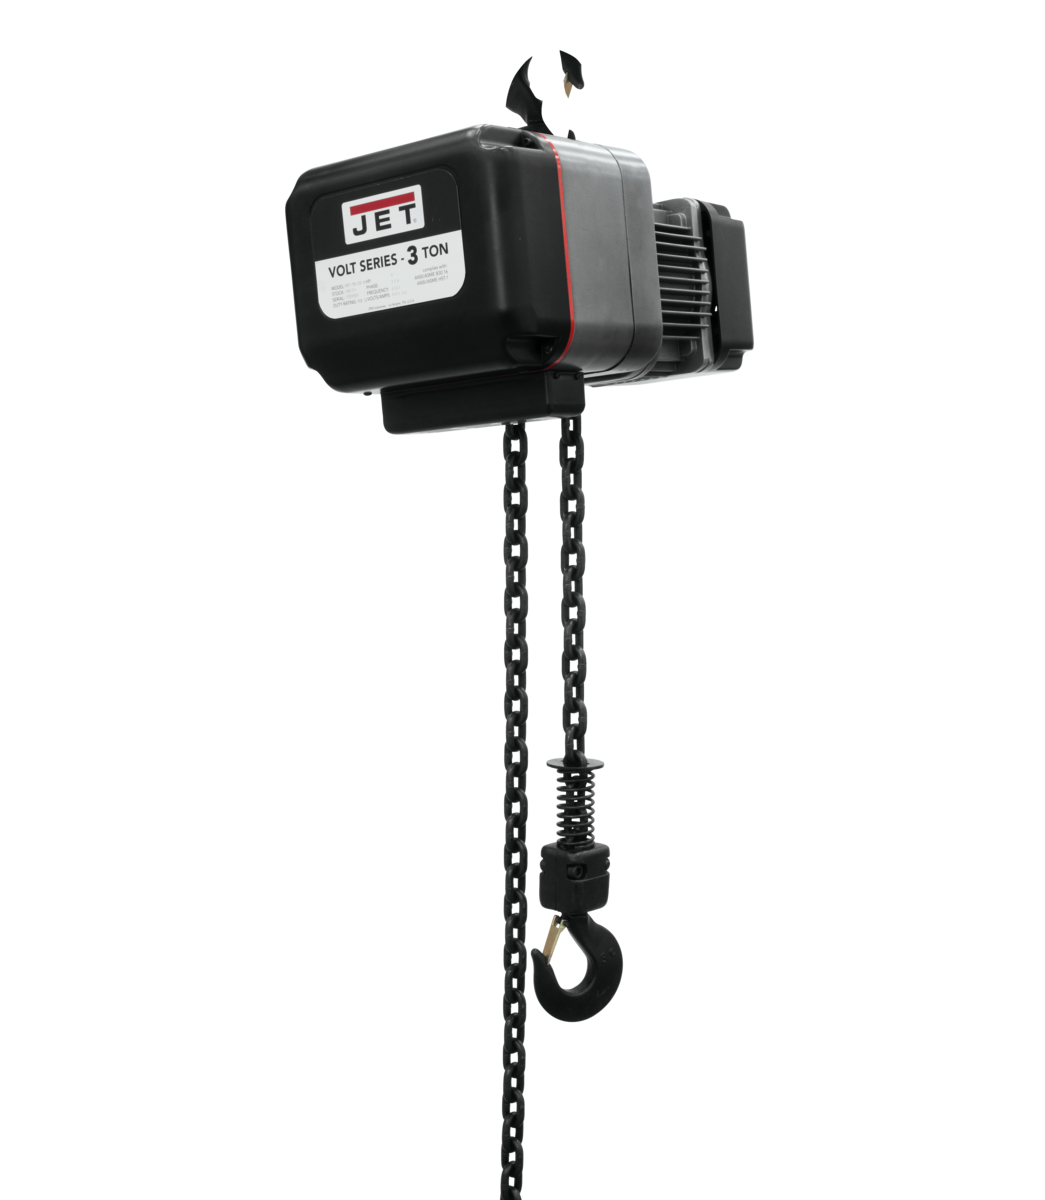 VOLT 3T VARIABLE-SPEED ELECTRIC HOIST  3PH 230V 15' LIFT